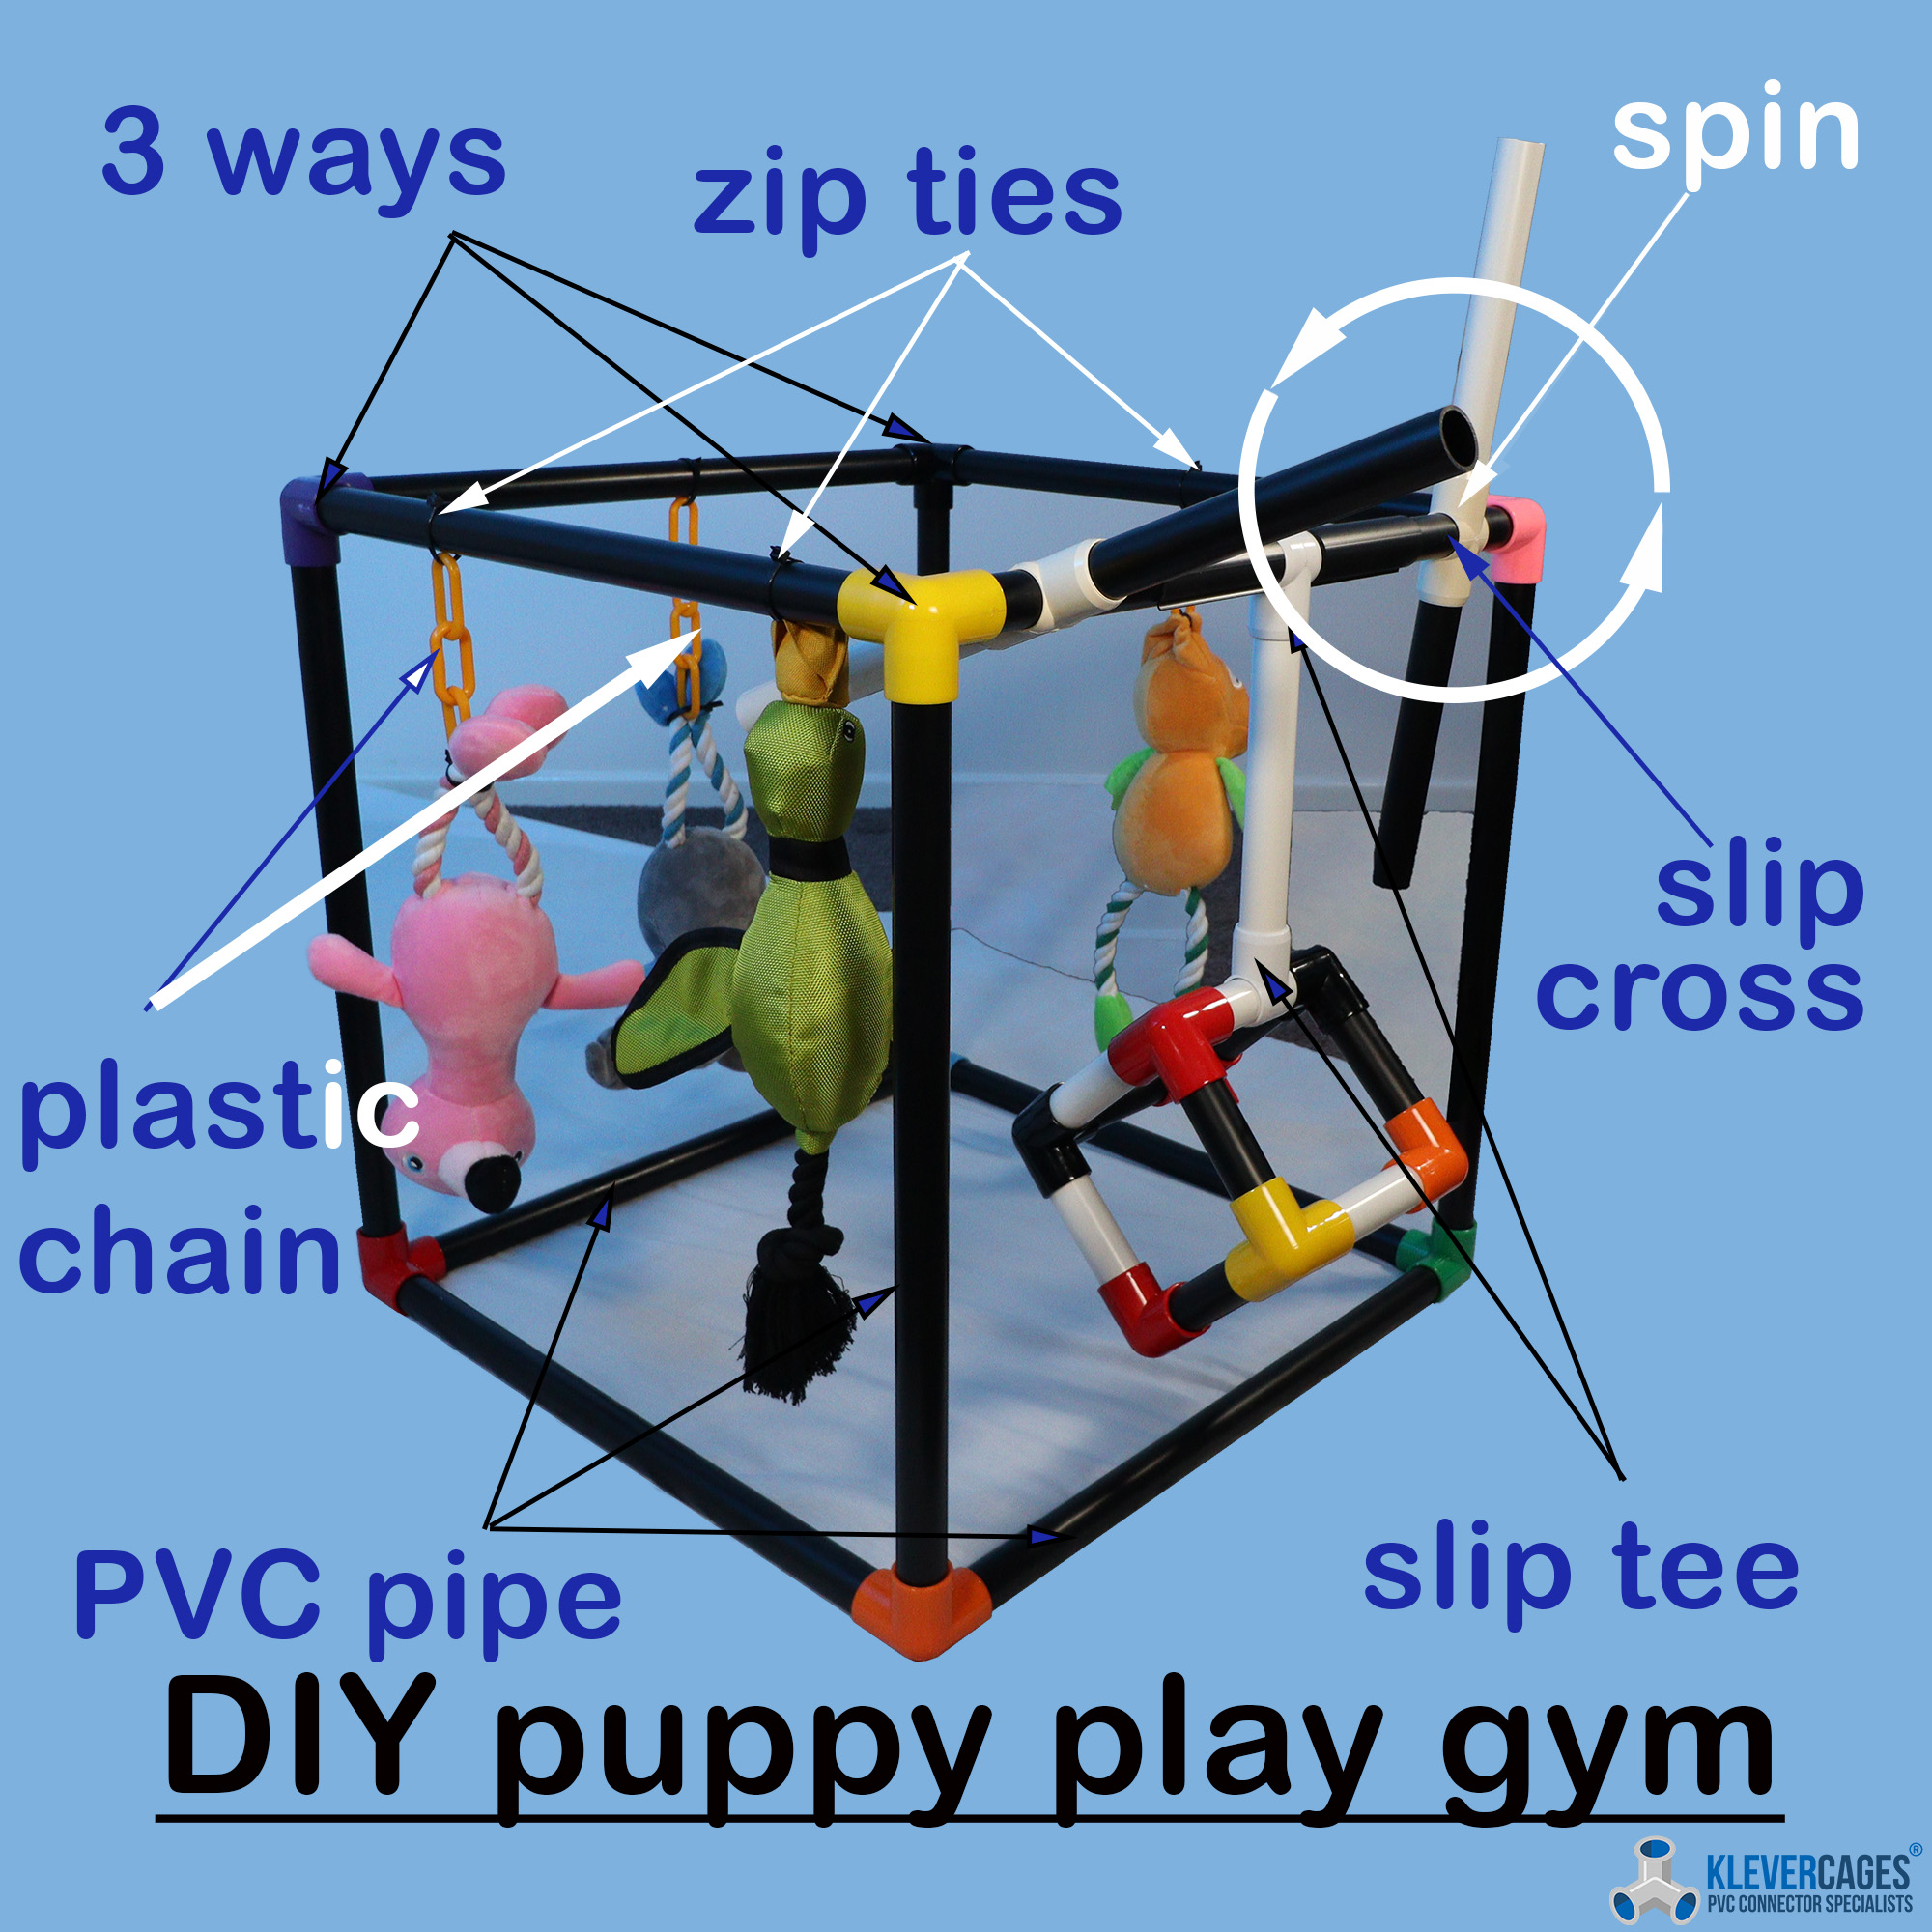 DIY puppy play gym built with connectors black PVC pipe from Klever Cages